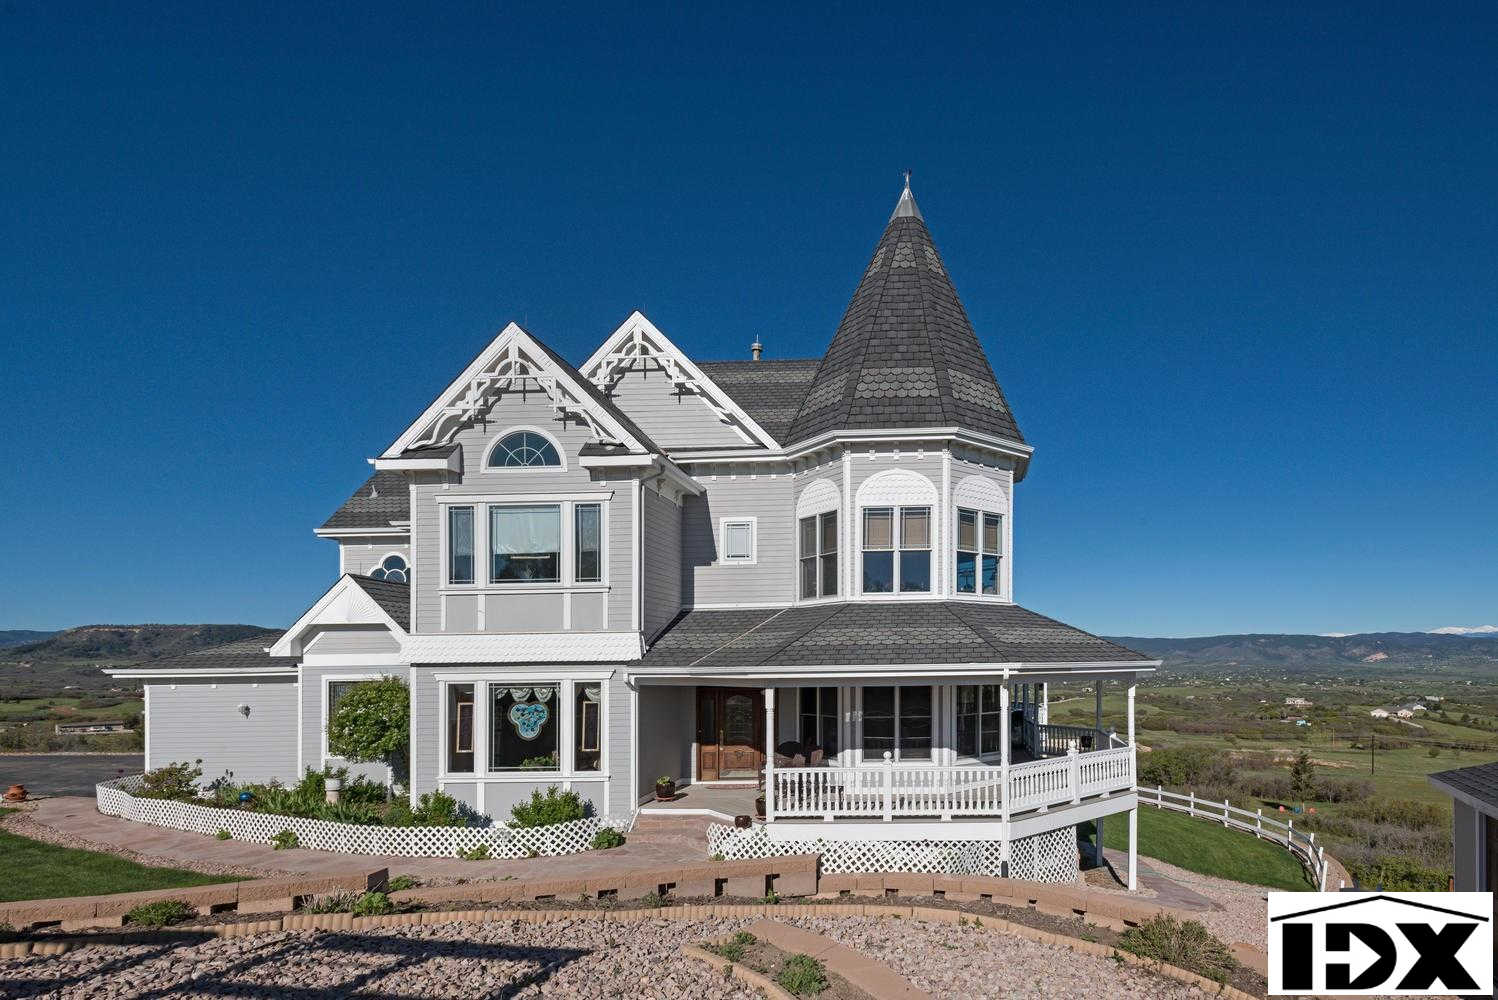 1391 Twin Oaks Lane, Castle Rock, CO 80109 now has a new price of $1,250,000!